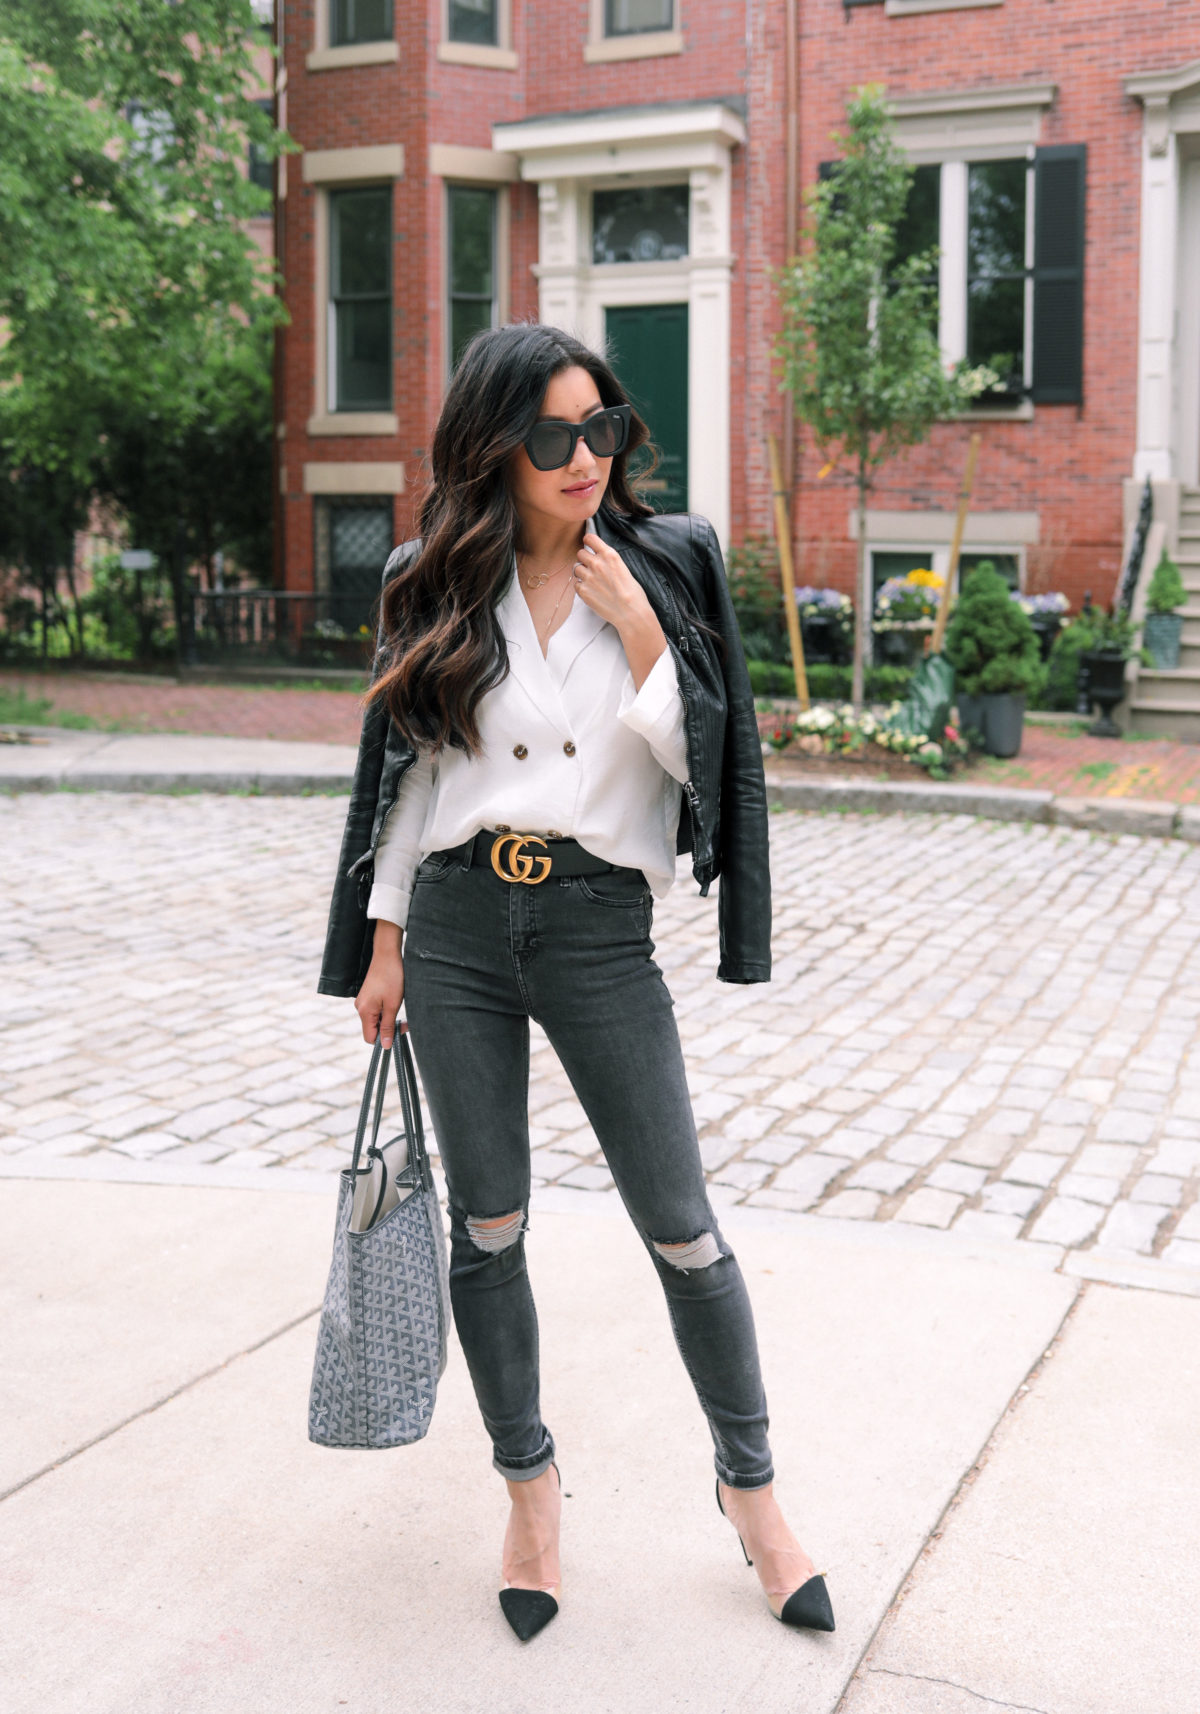 d91e136f221e Extra Petite - Fashion, style tips, and outfit ideas | Based in Boston